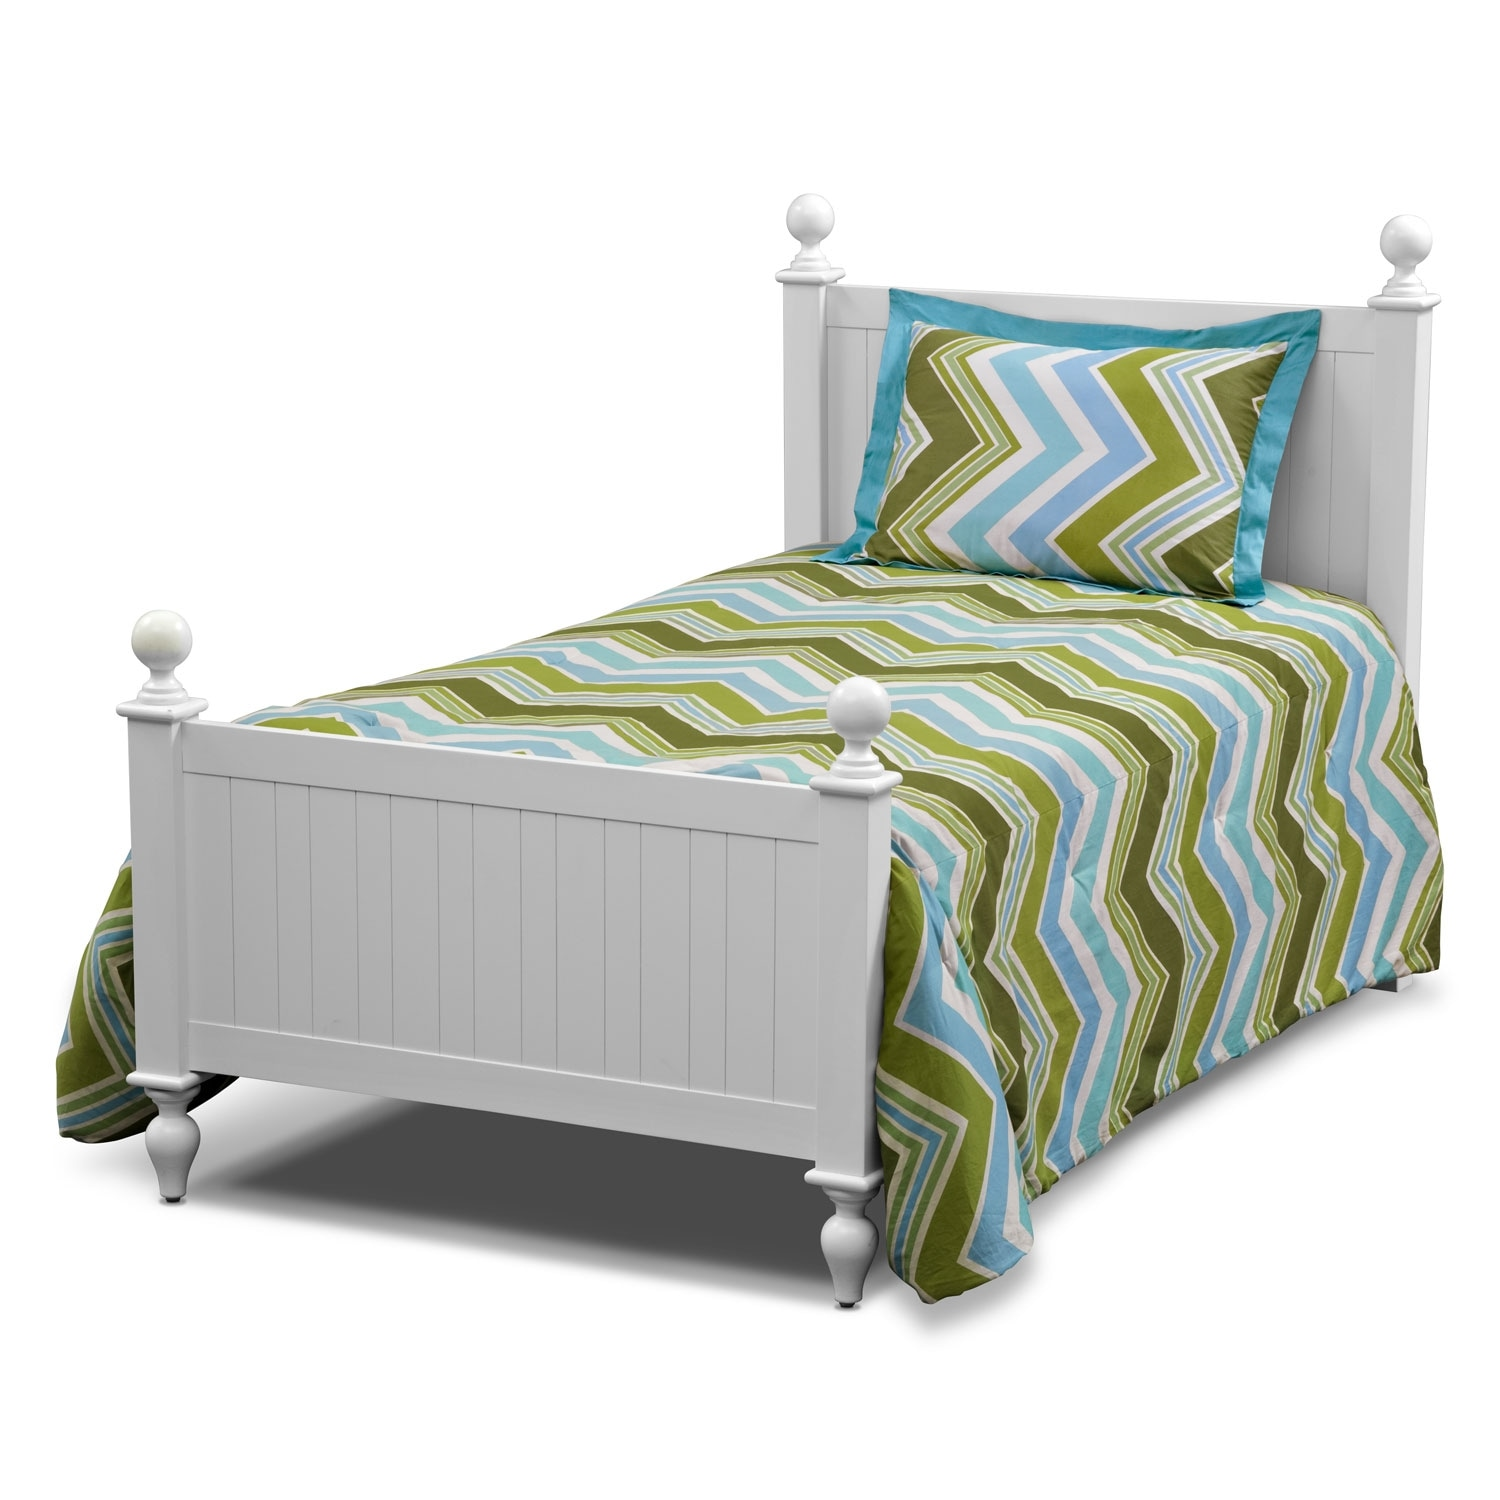 Accent and Occasional Furniture - Happy Chick 3-Piece Full/Queen Comforter Set - Lime and Teal